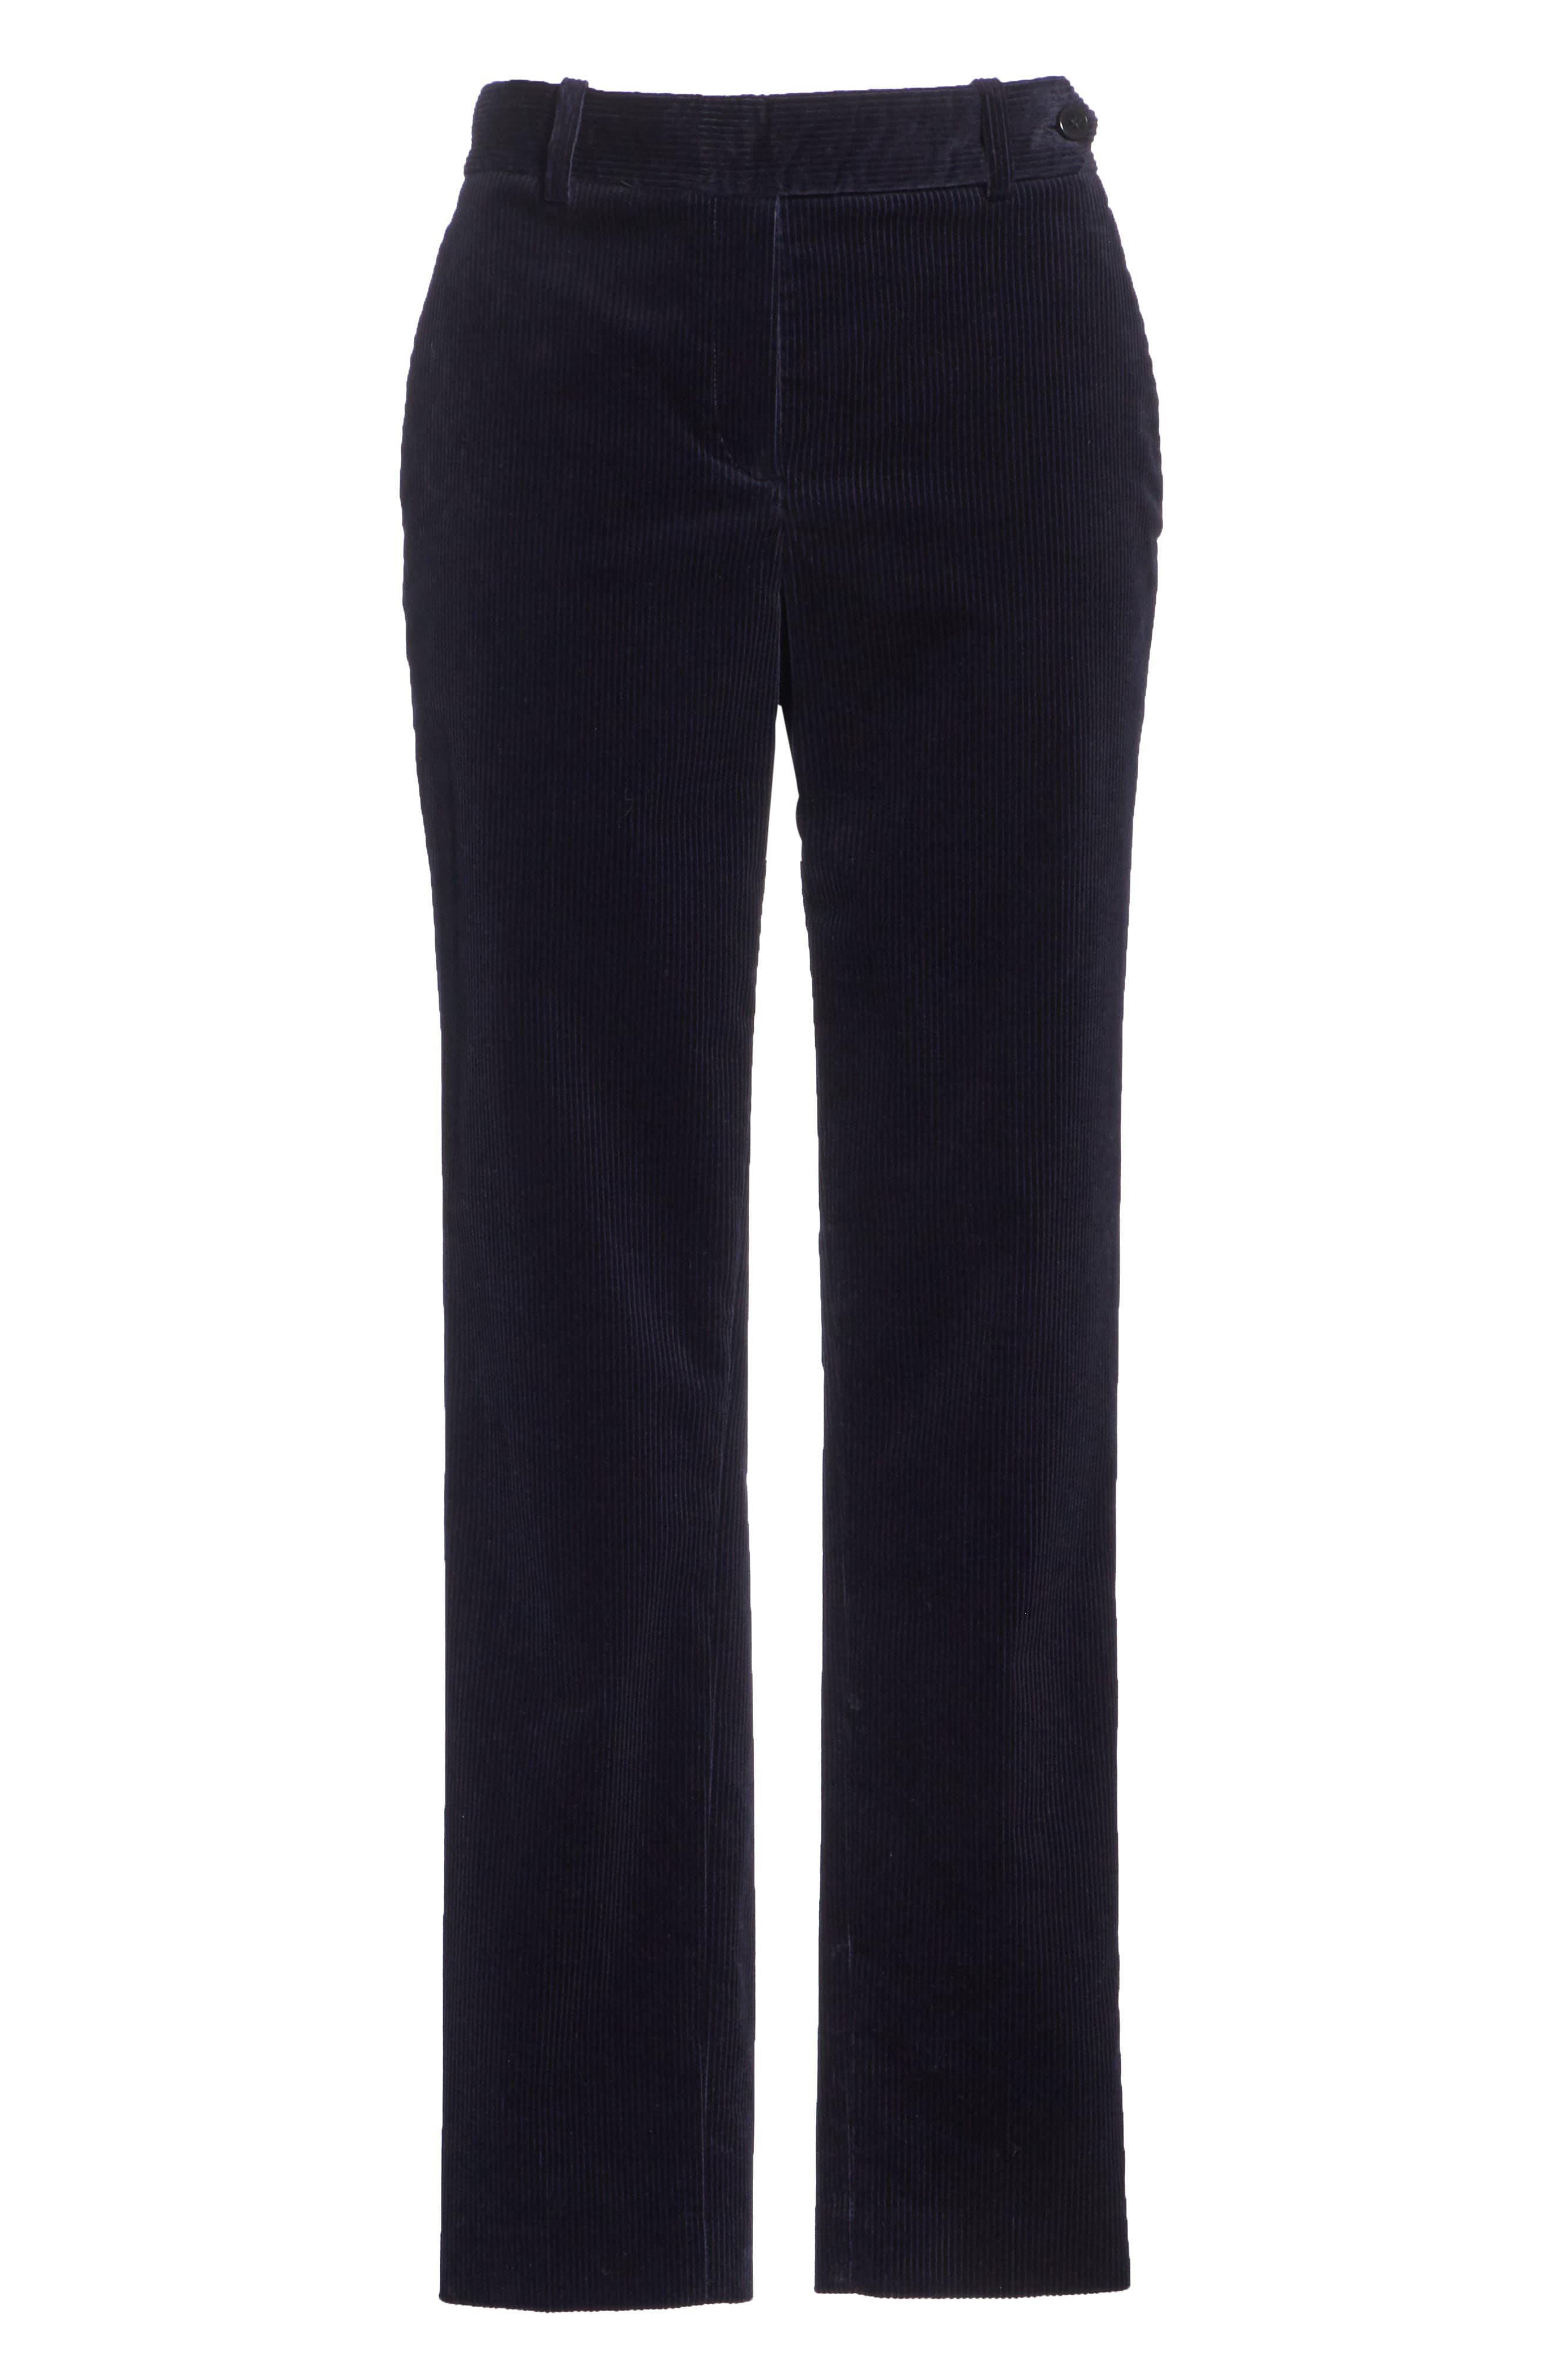 Slim Corduroy Trousers,                             Alternate thumbnail 6, color,                             DEEP NAVY